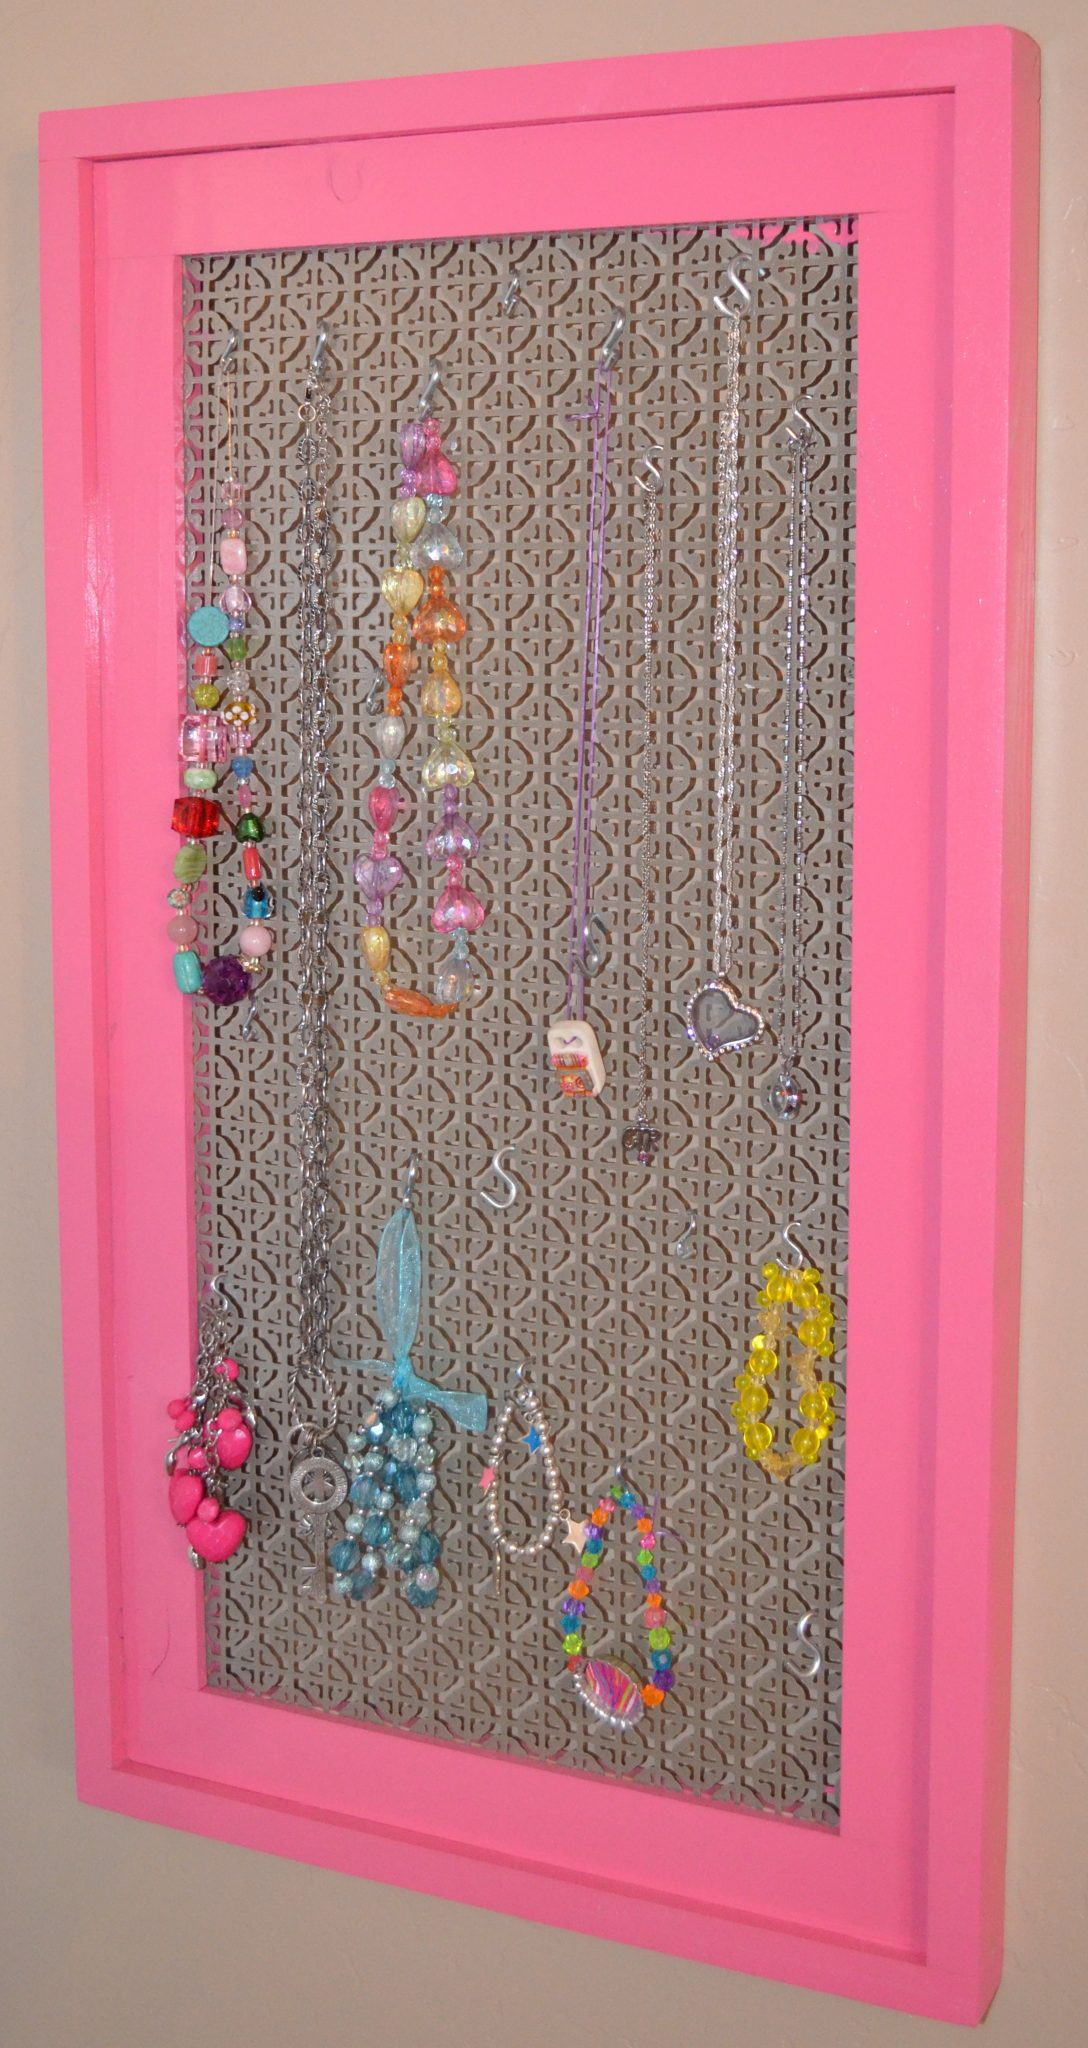 A Simple Diy Frame To Make A Jewelry Display Board